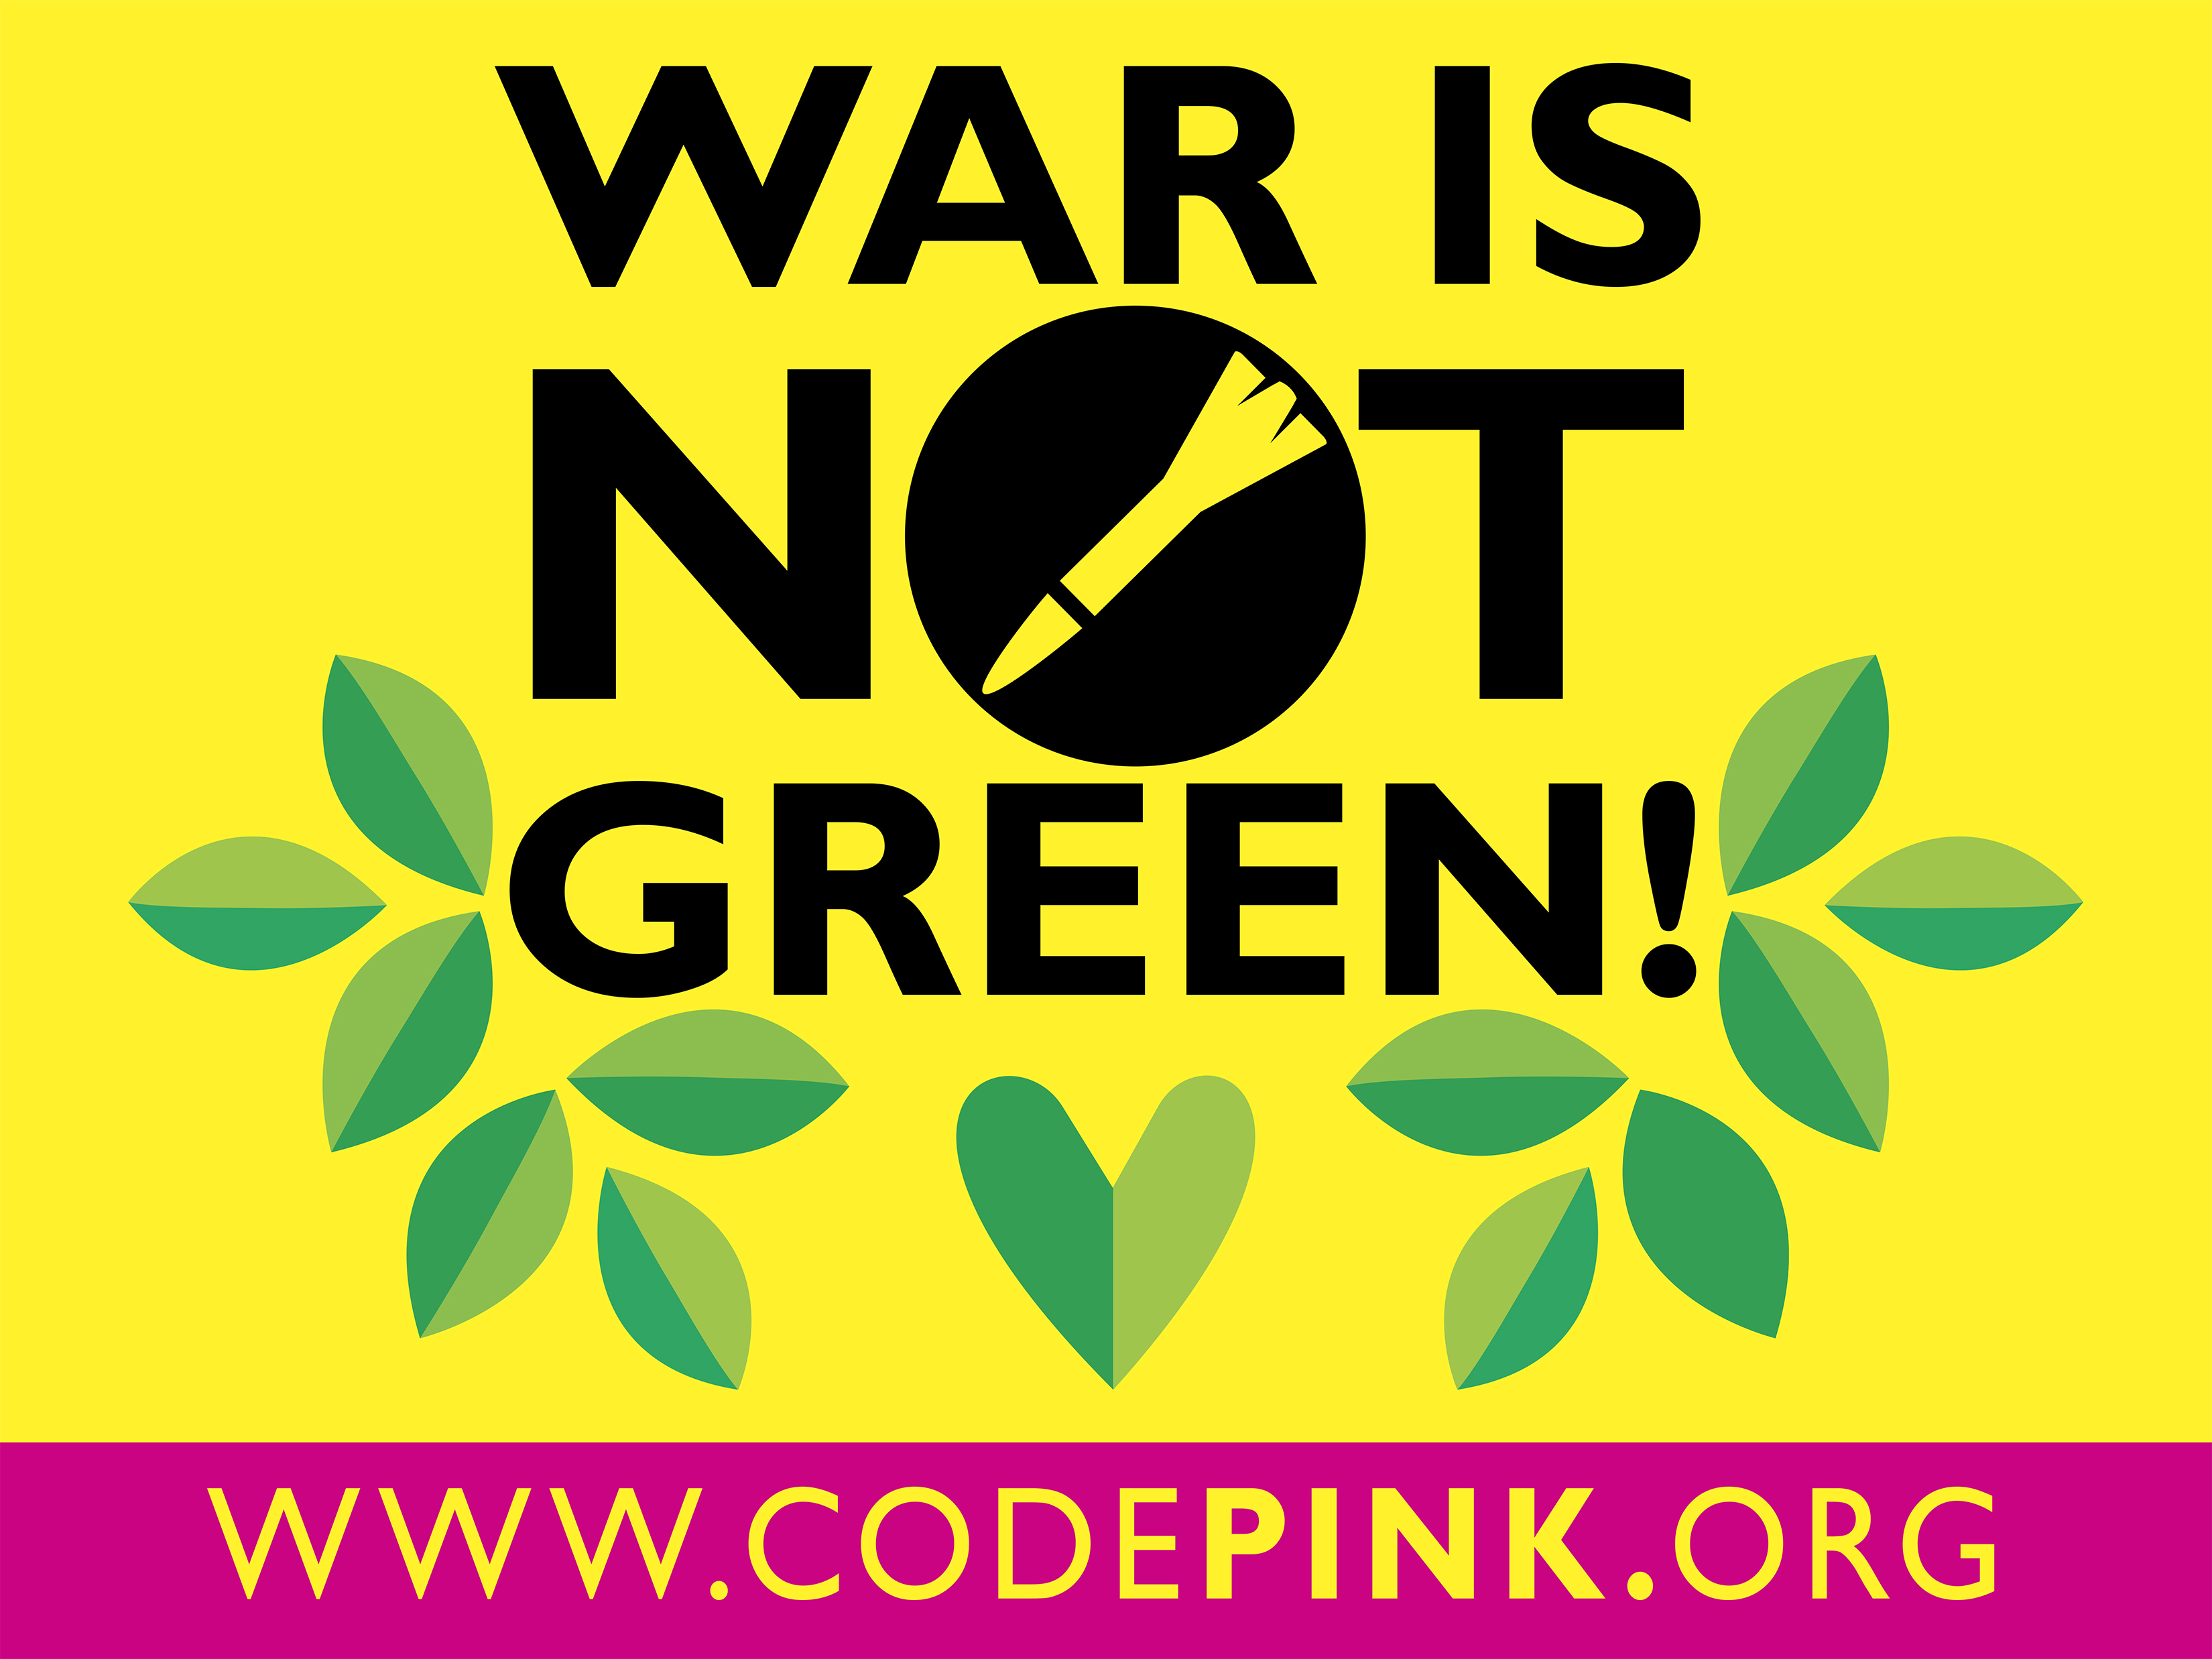 War_is_not_Green_Sept_2019_8x11_Poster_2_no_bleeds.jpg